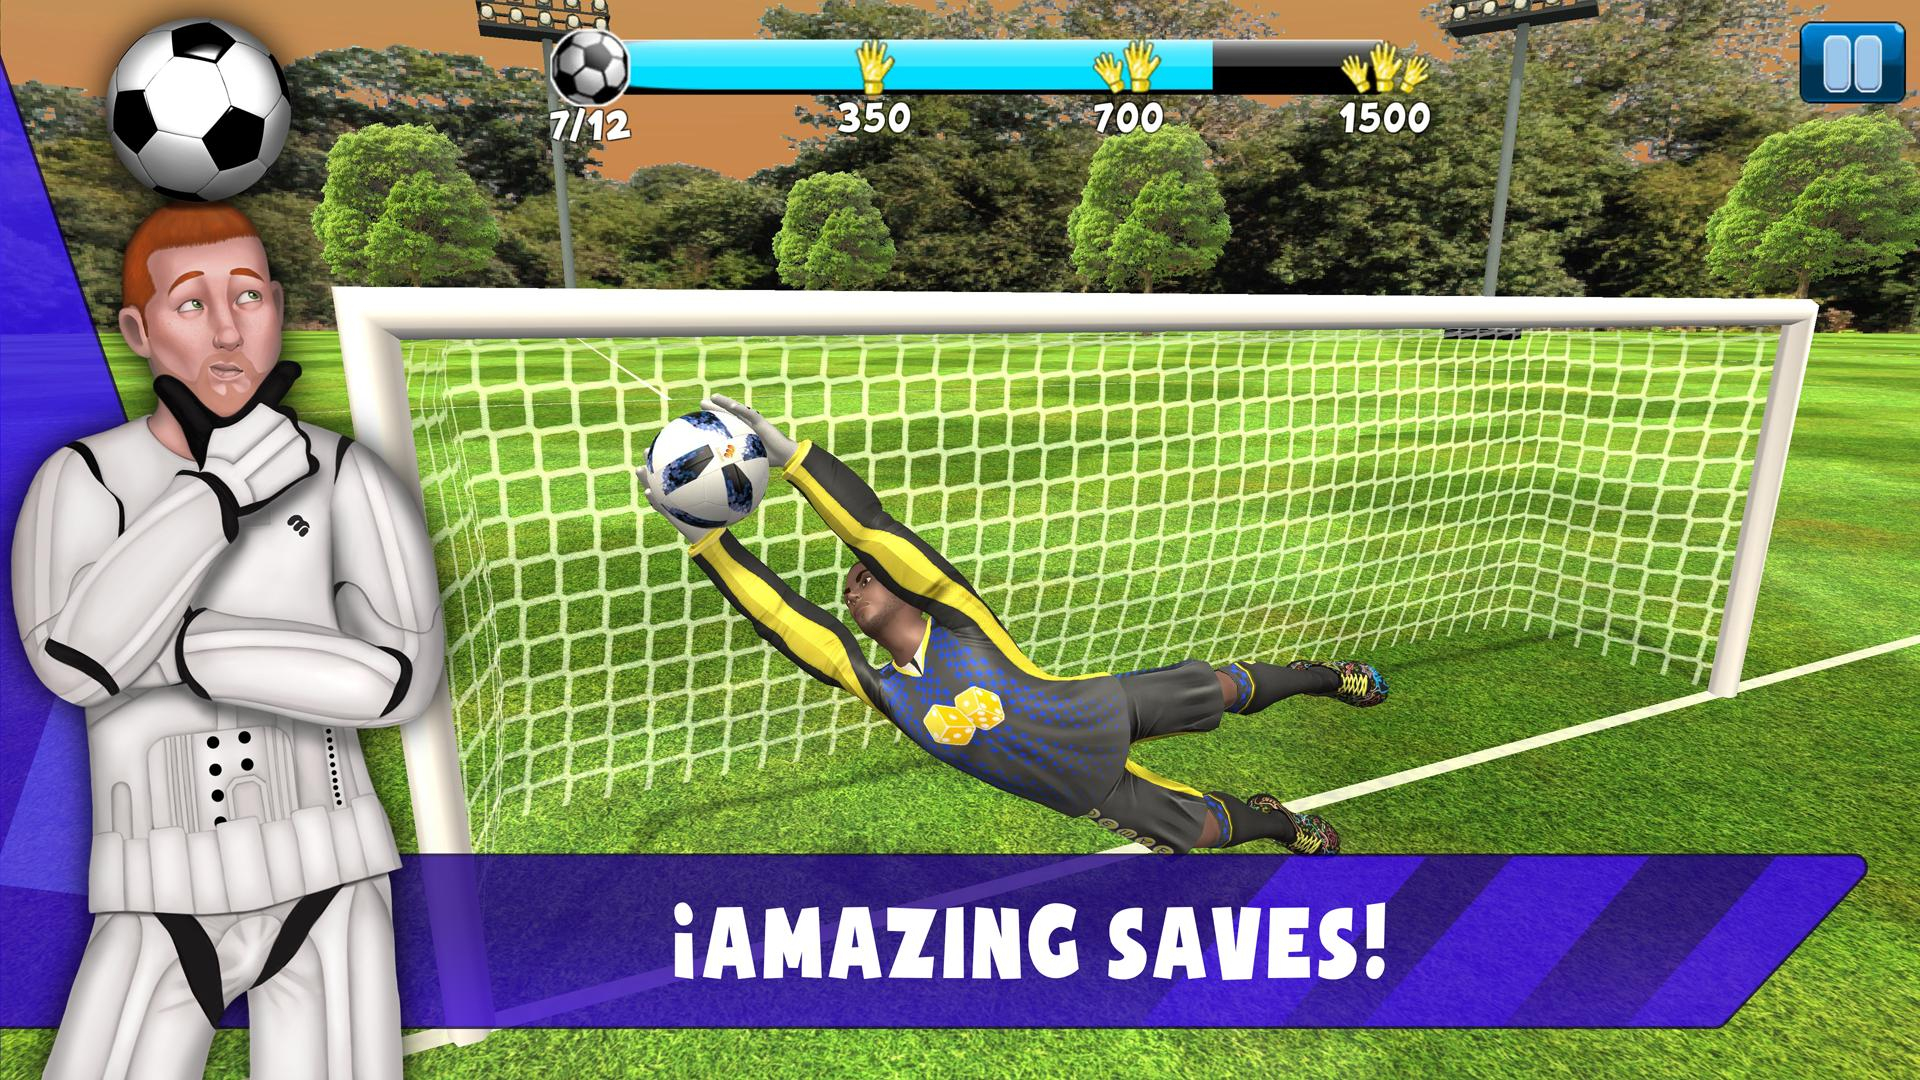 Save! Hero - Gardien De But Jeu Foot 2019 Pour Android à Jeux De Foot Gardien De But